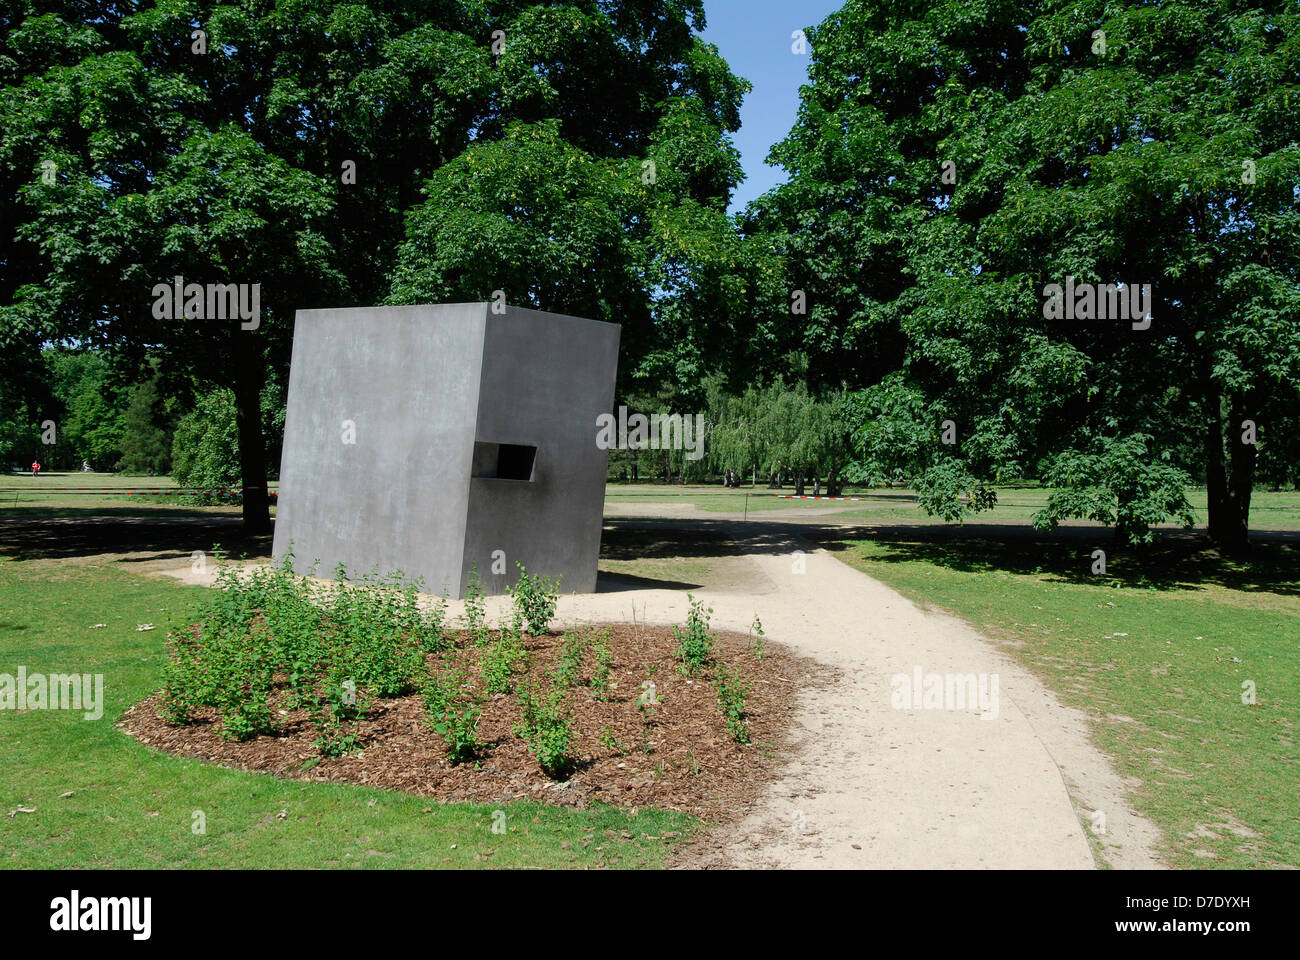 Monument to the Gay Victims of the Nazis Berlin Germany. Stock Photo